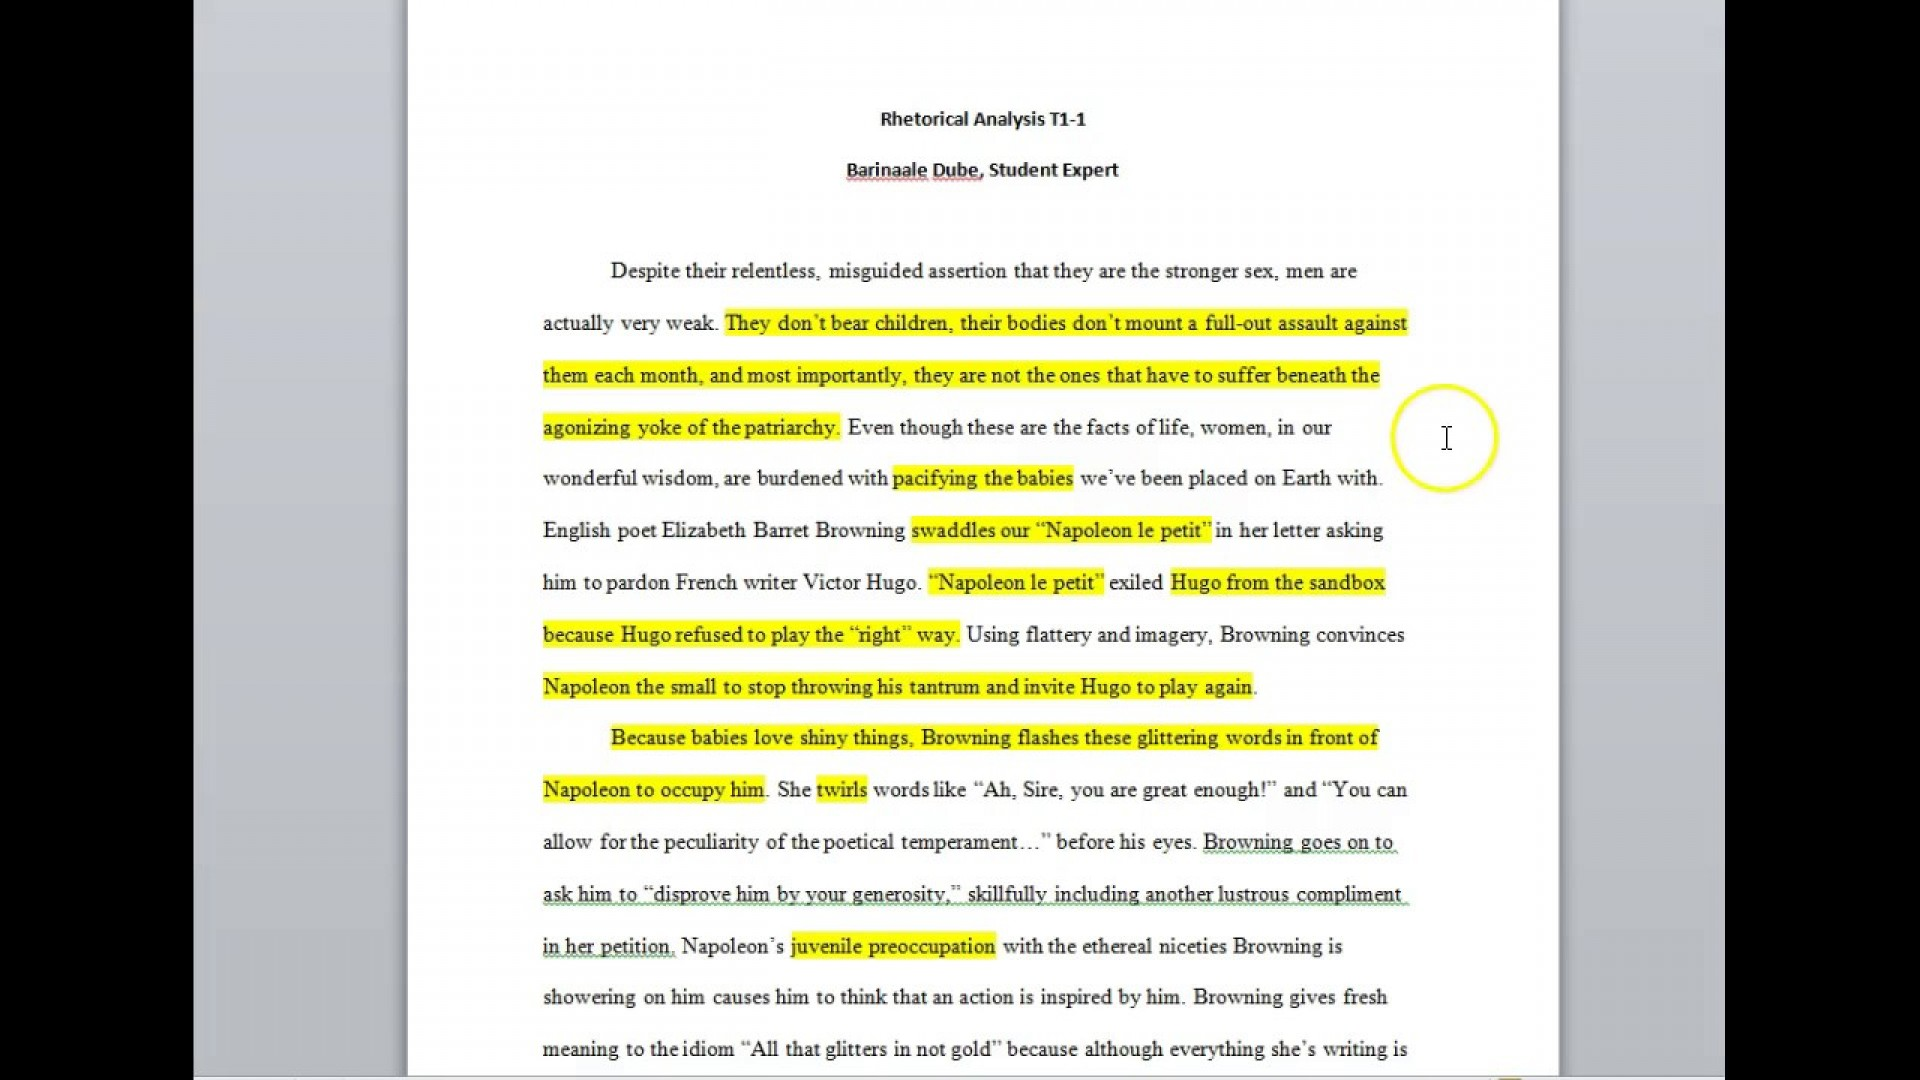 005 Essay Example Defineal Analysis How To Write Maxresde Introduction Conclusion Sat On An Image Advertisement For College Outline Ap Beautiful Rhetoric Rhetorical Thesis Topics 2018 List 1920